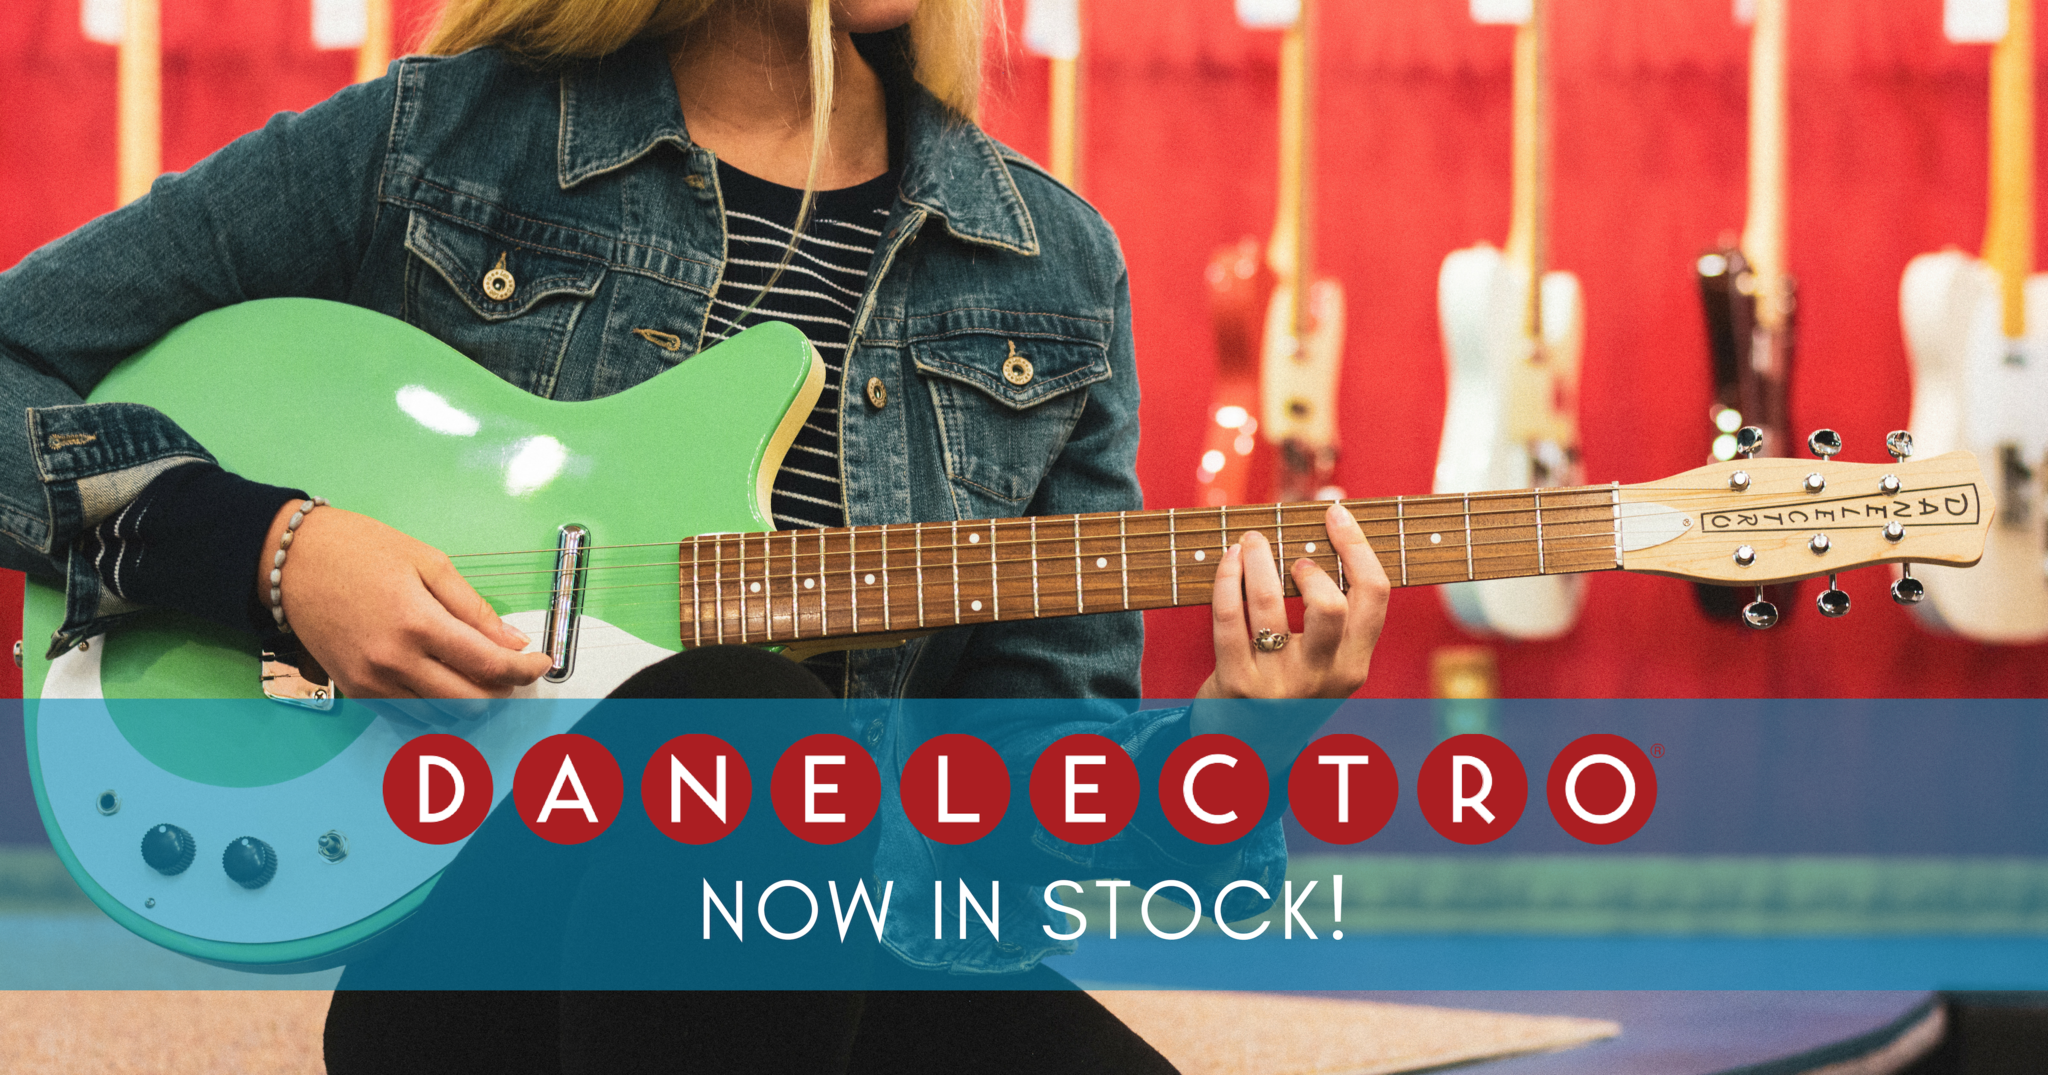 Danelectro Is Now At Sims!